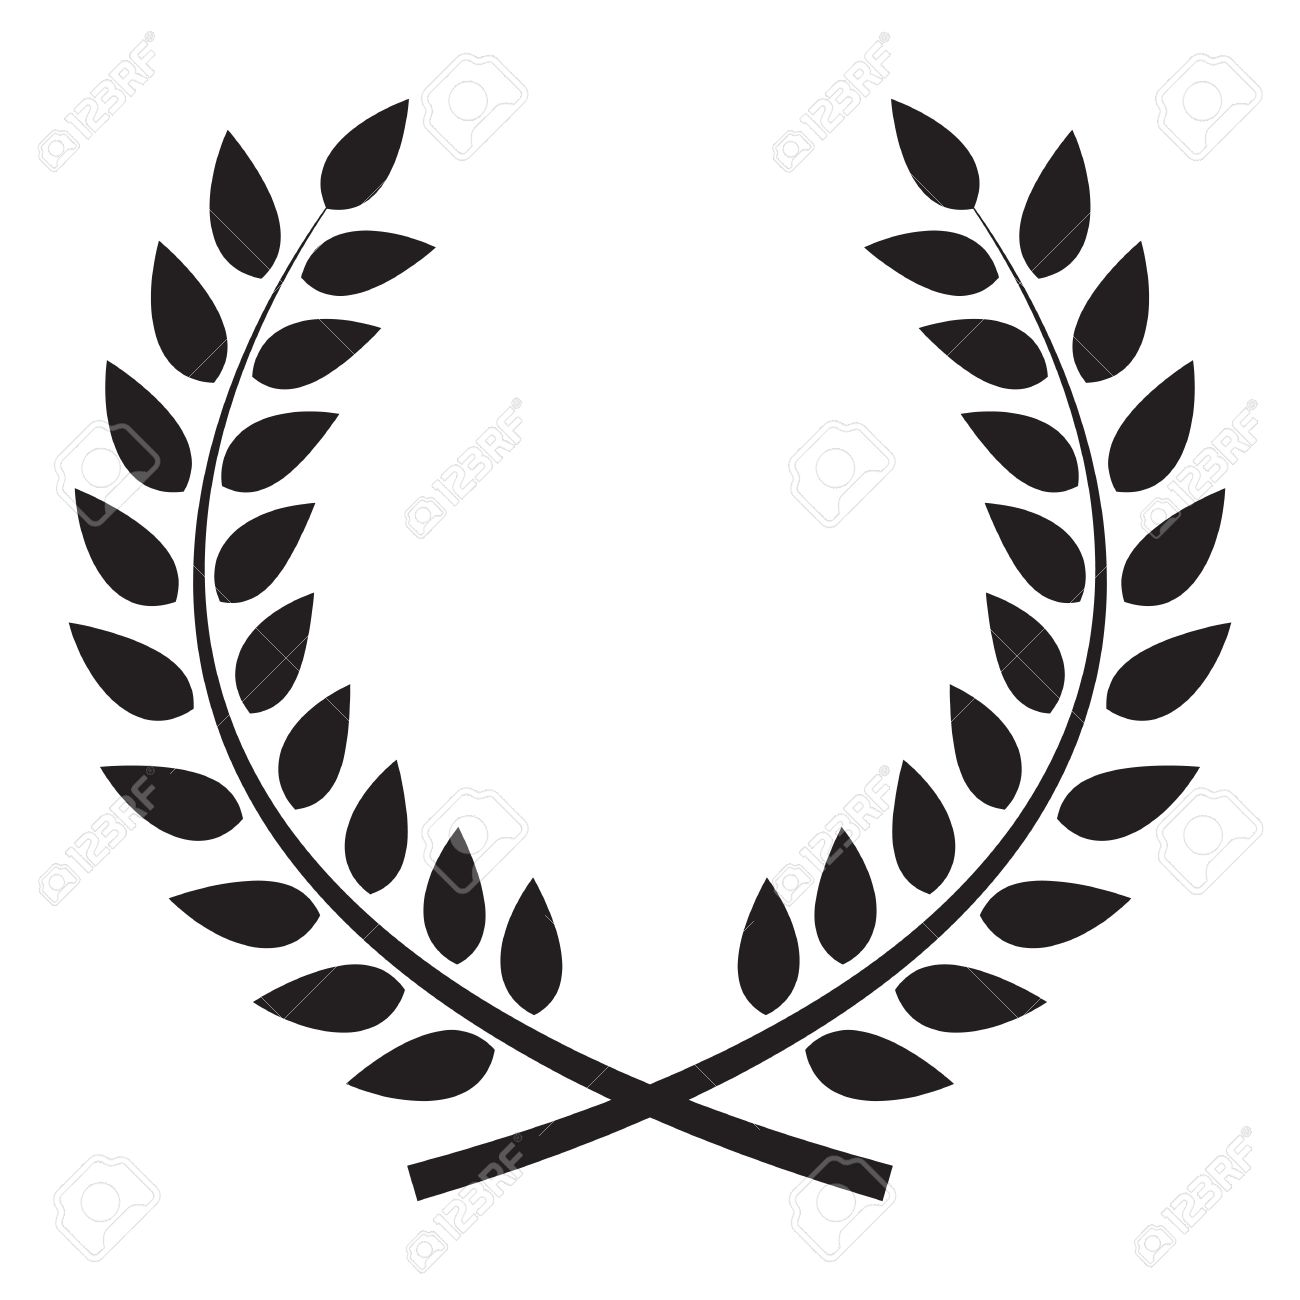 Wreath clipart free download banner royalty free stock Laurel Leaf Clip Art | Free download best Laurel Leaf Clip Art on ... banner royalty free stock